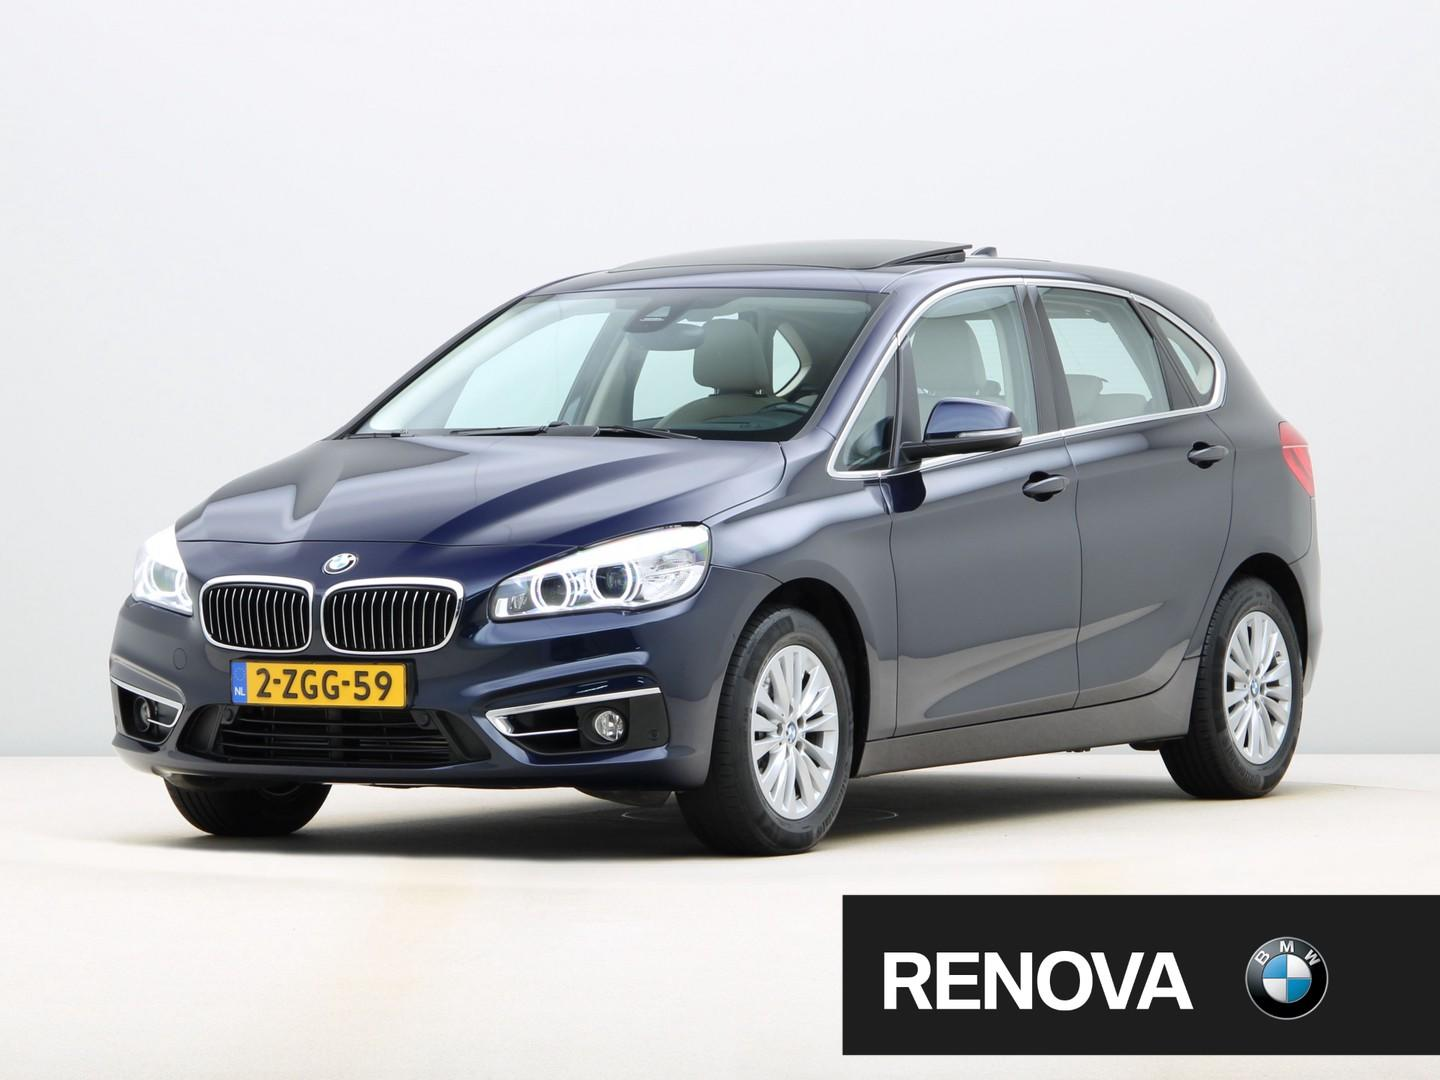 Bmw 2 serie Active tourer 218i high executive trekhaak met afneembare kogel